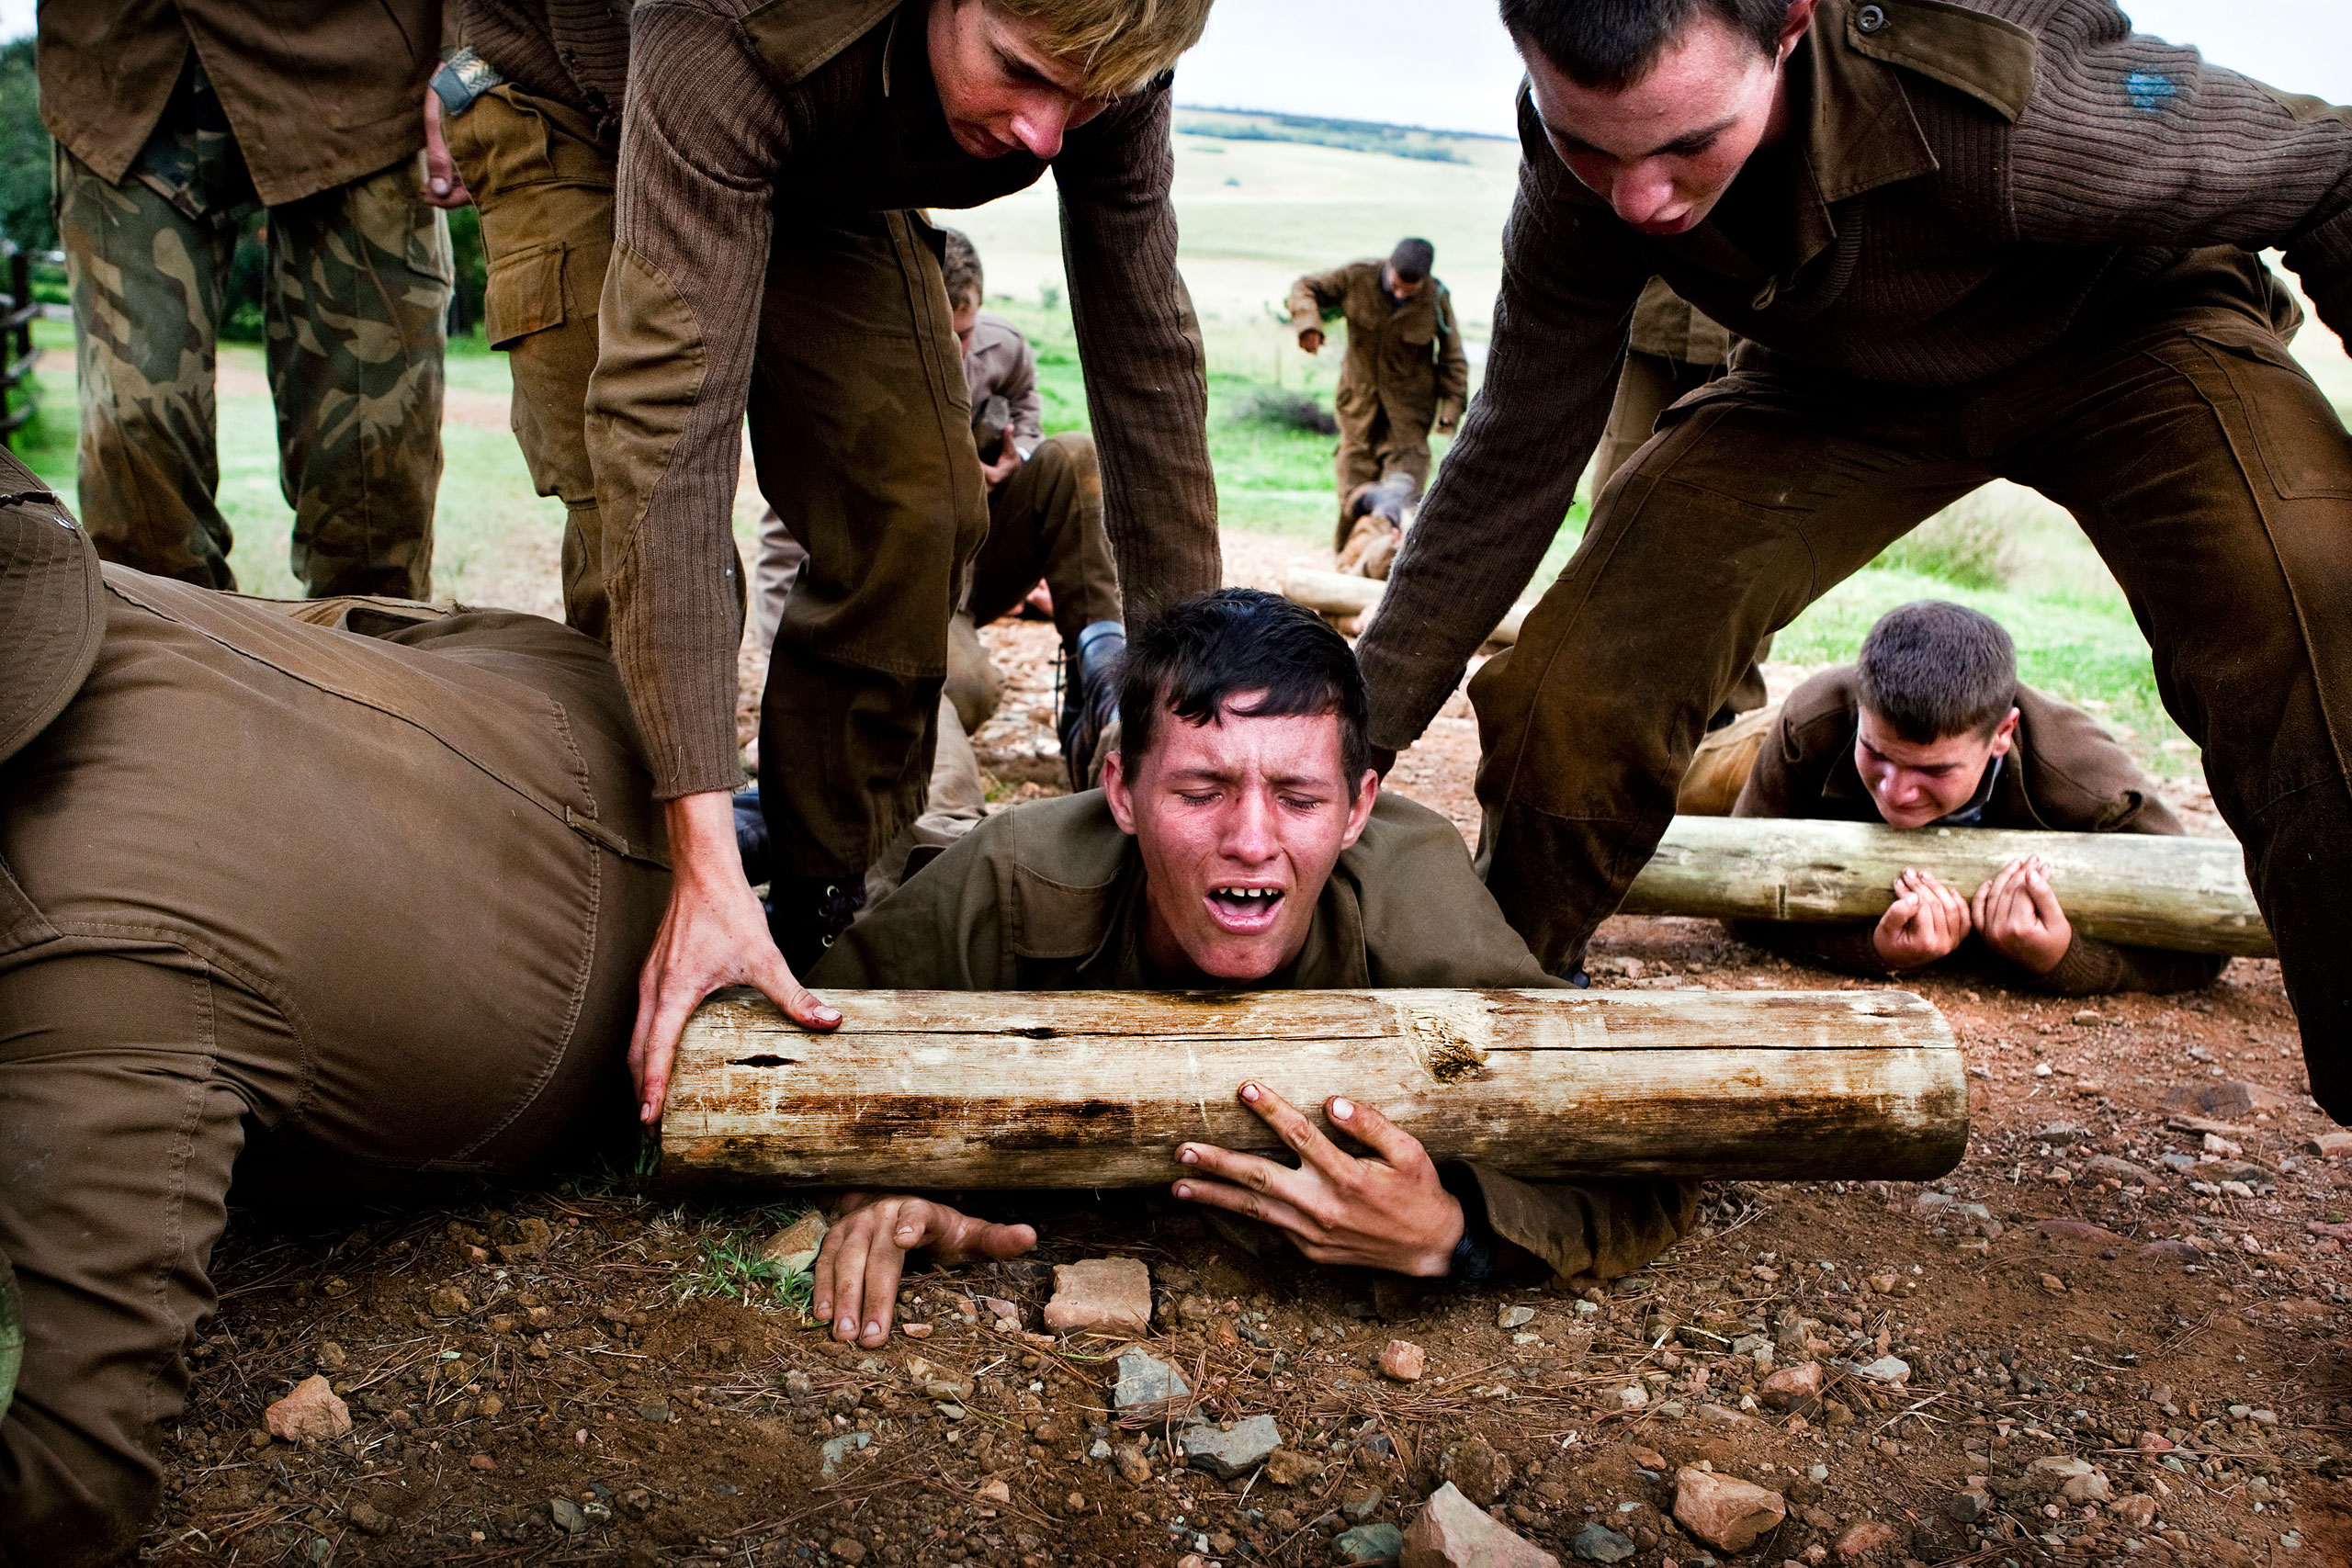 One of the boys cries from pain during one of the tough camp exercises.